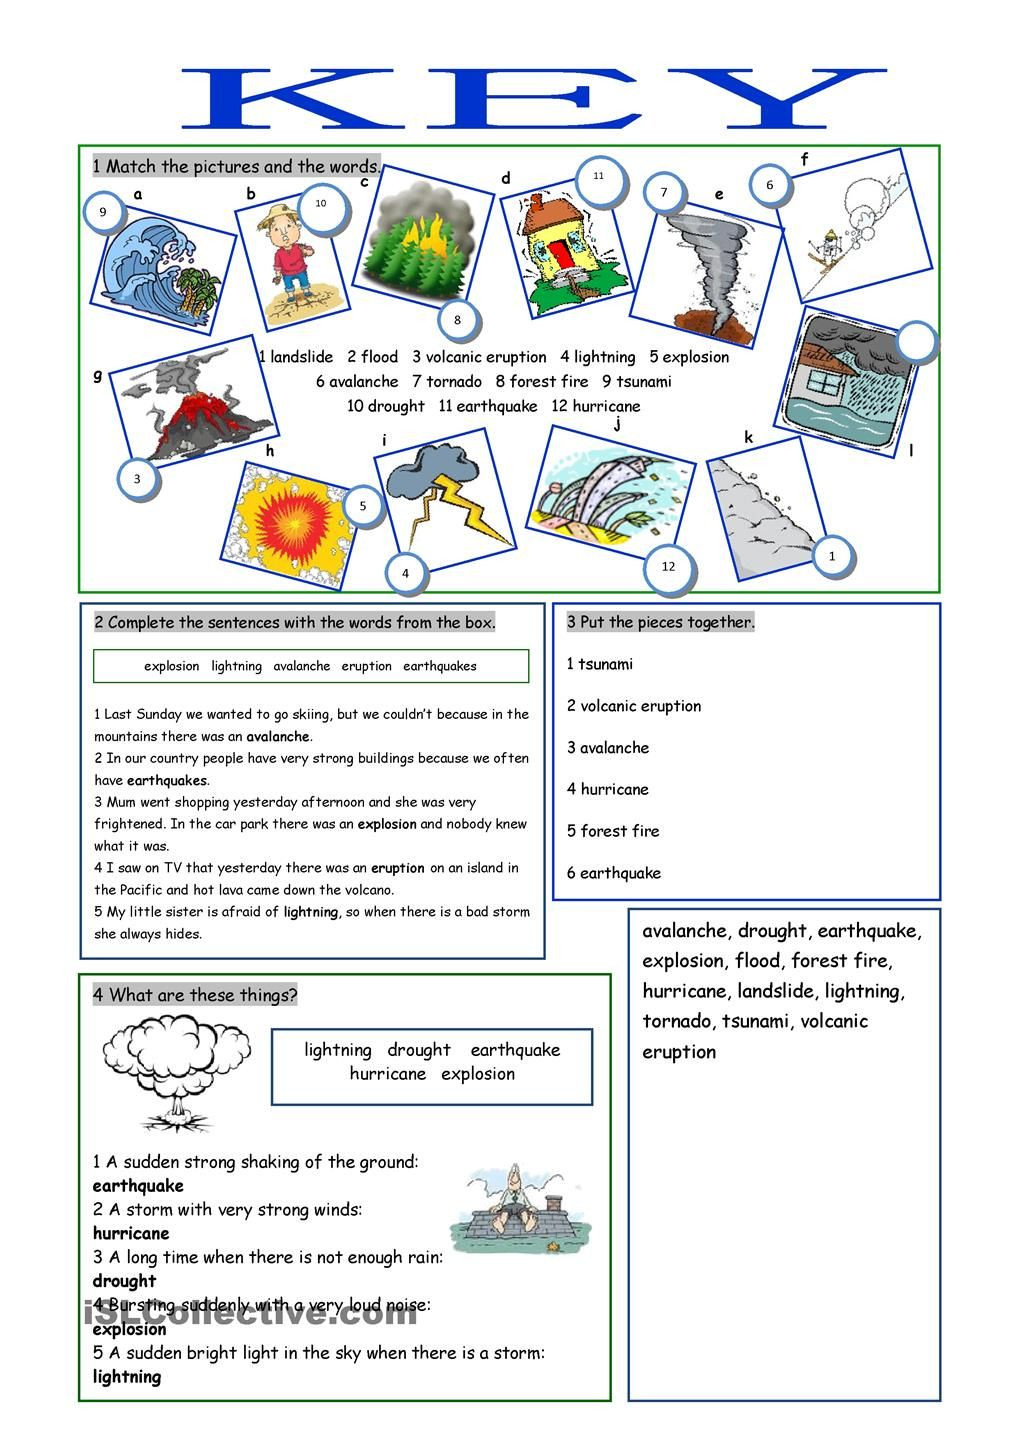 Middle School Science Worksheets Pdf Natural Disasters Vocabulary Exercises